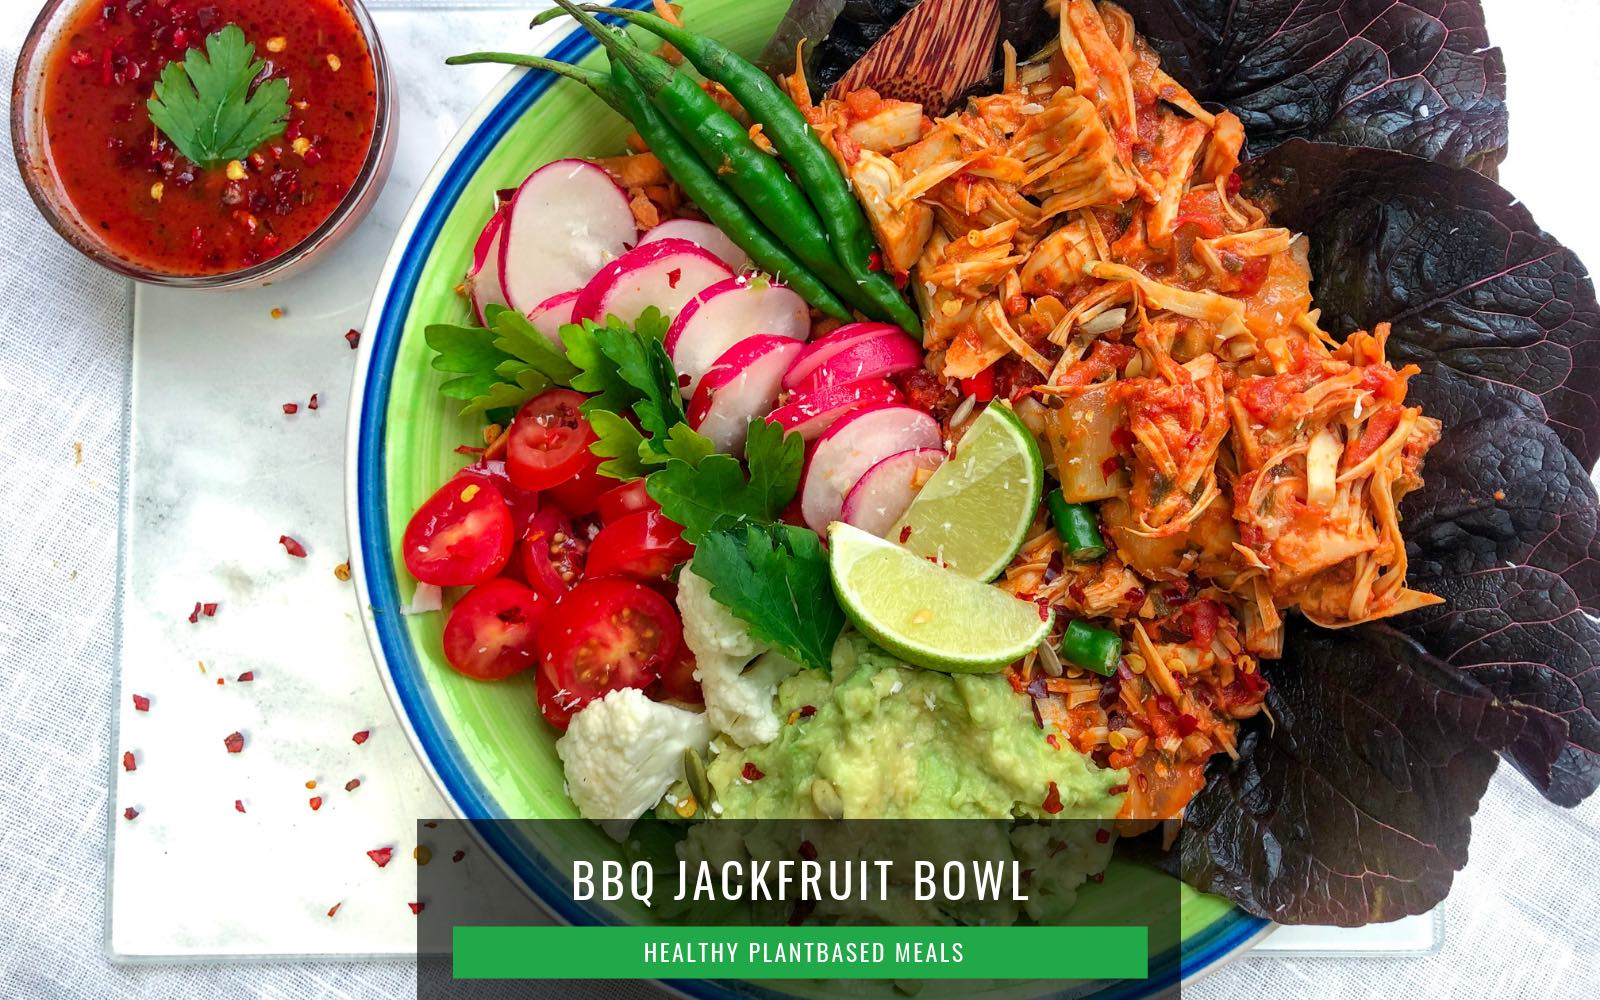 Jackfruit Vegan Recipes-Jackfruit BBQ Bowl